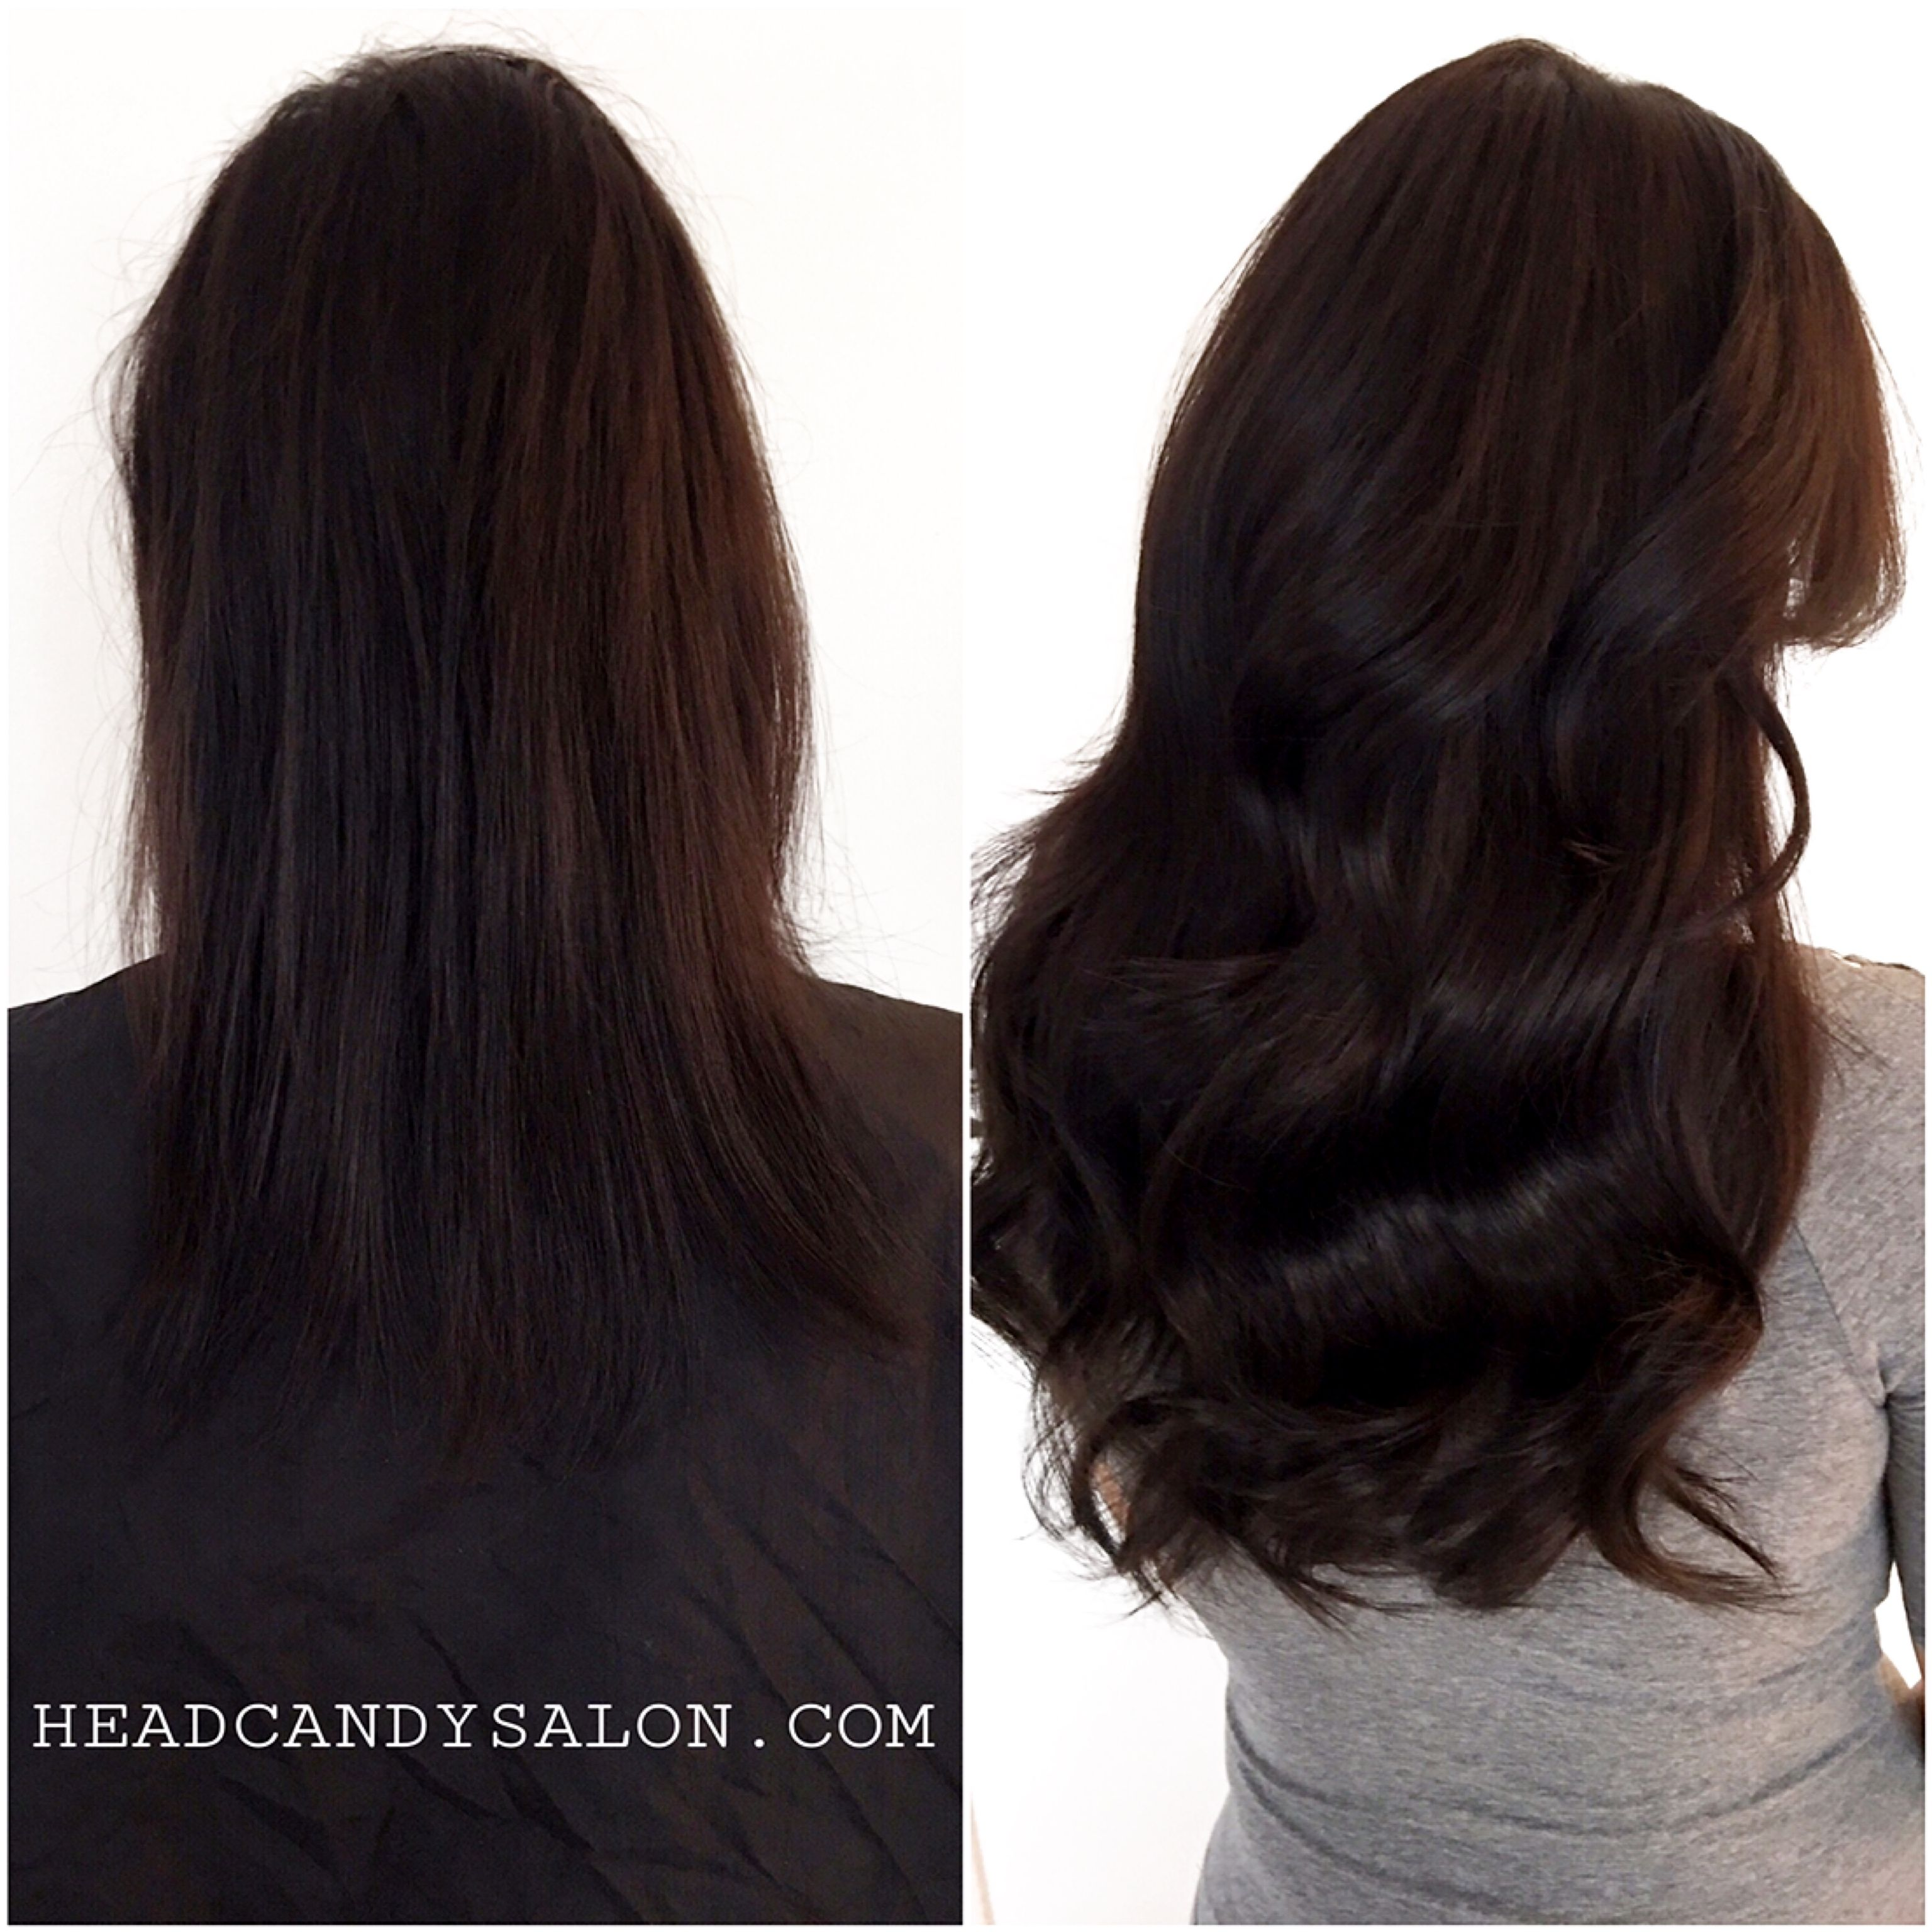 Before And After Hidden Tape Hair Extensions Hairextensions